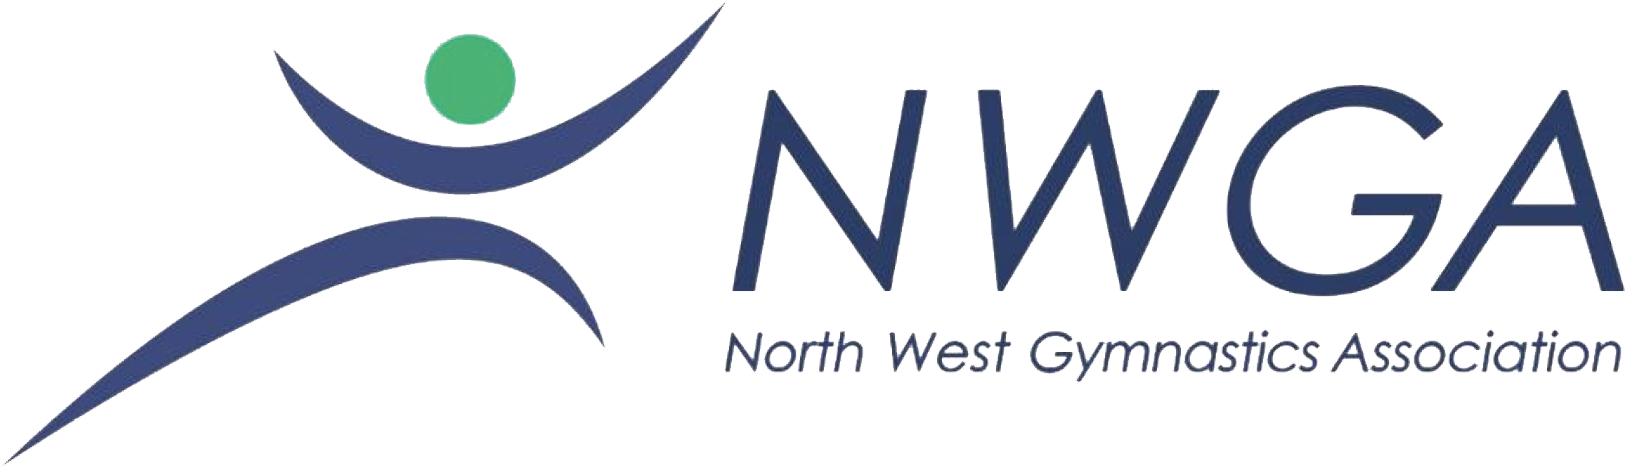 North West Gymnastics Association